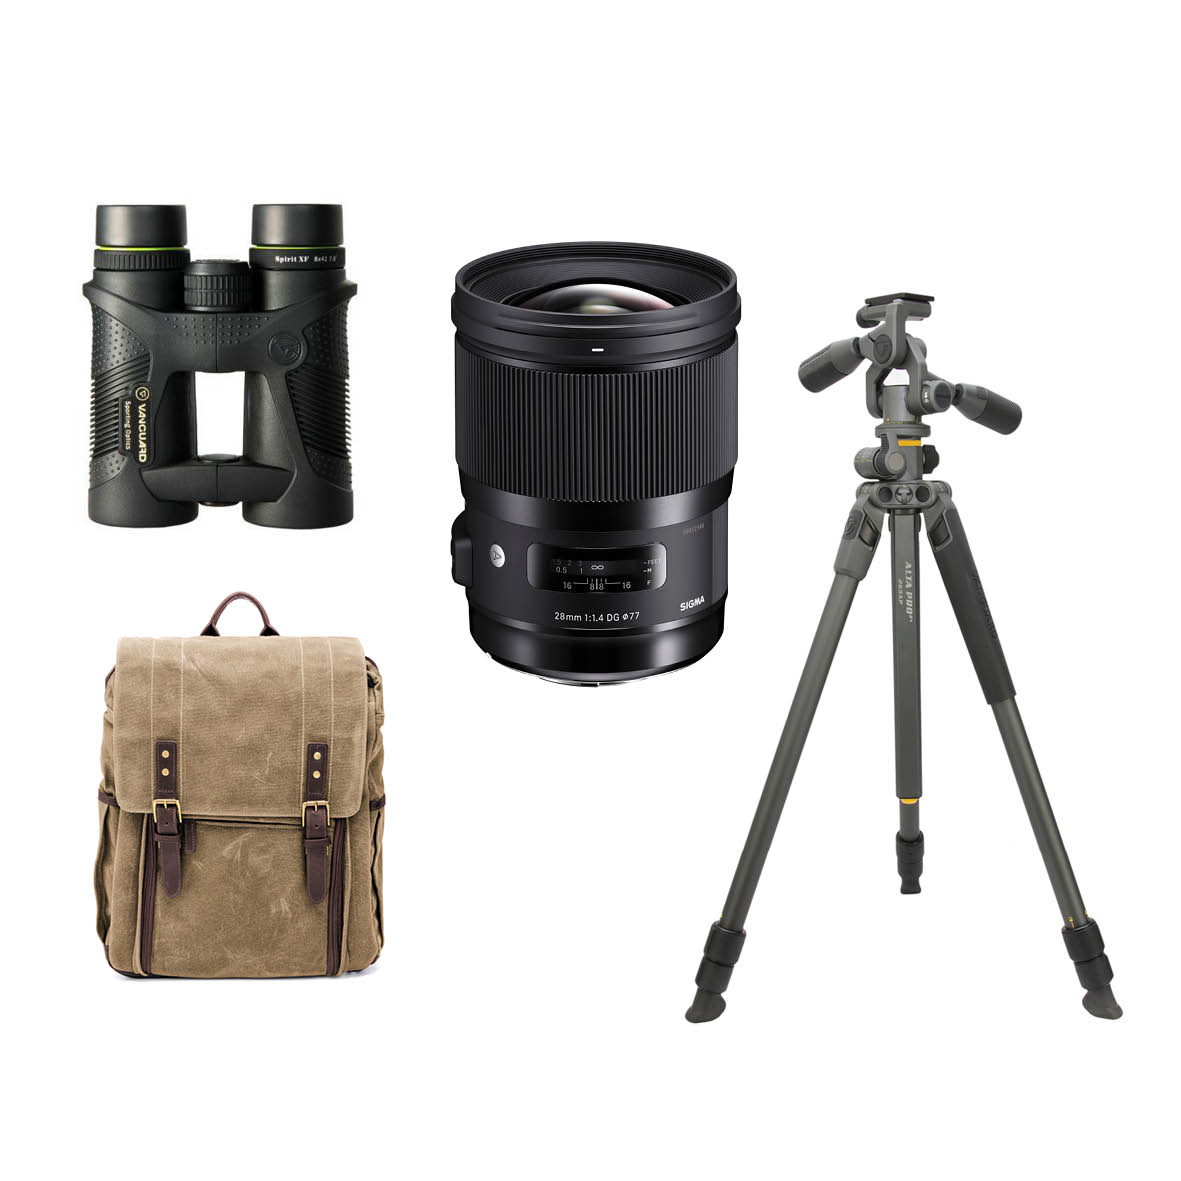 Grand Prize - Thanks to SigmaSigma 28mm f/1.4 Art lens Canon mount, worth $1999Vanguard Alta Pro 2+ 263AP Aluminium Tripod, worth $429Ona Camps Bay Backpack, worth $799Vanguard 8x42 Binoculars, worth $250